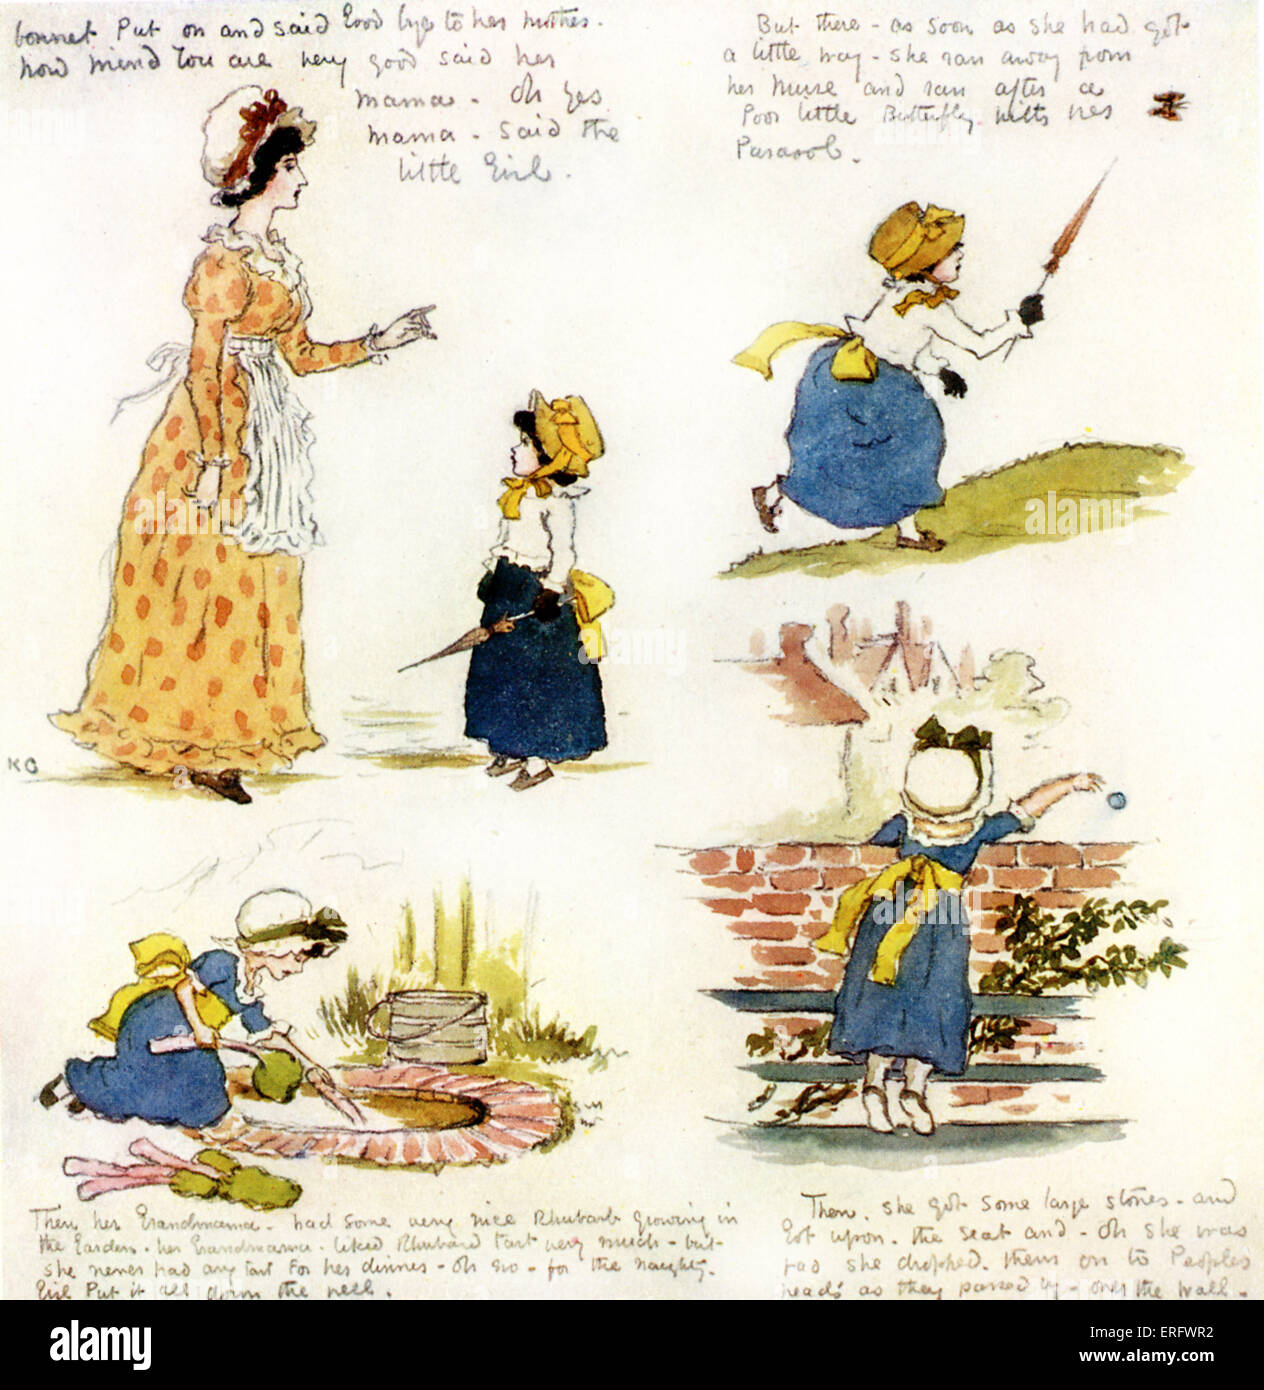 'The naughty little girl who went to see her grandmama' by Kate Greenaway.  Four-page  story written for Violet Stock Photo